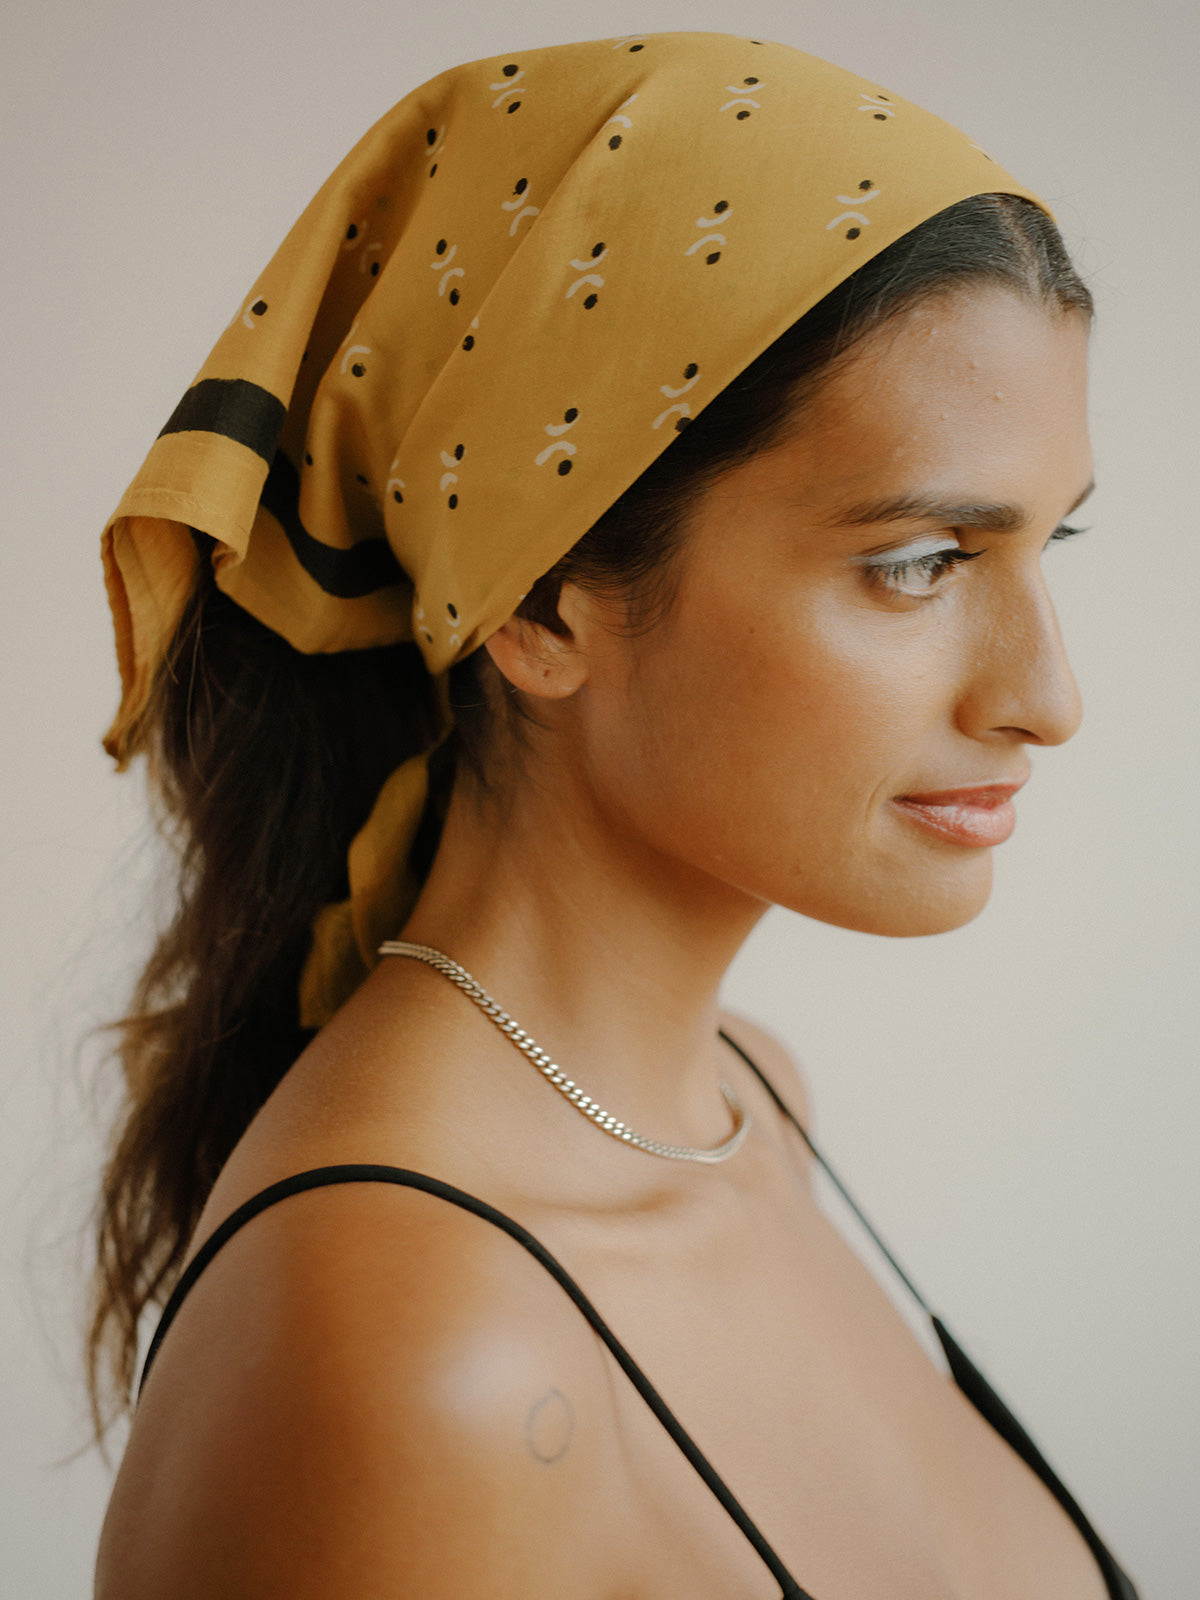 SUNDAY/MONDAY's Fermata bandana wrapped around hair. Block printed mustard yellow bandana.